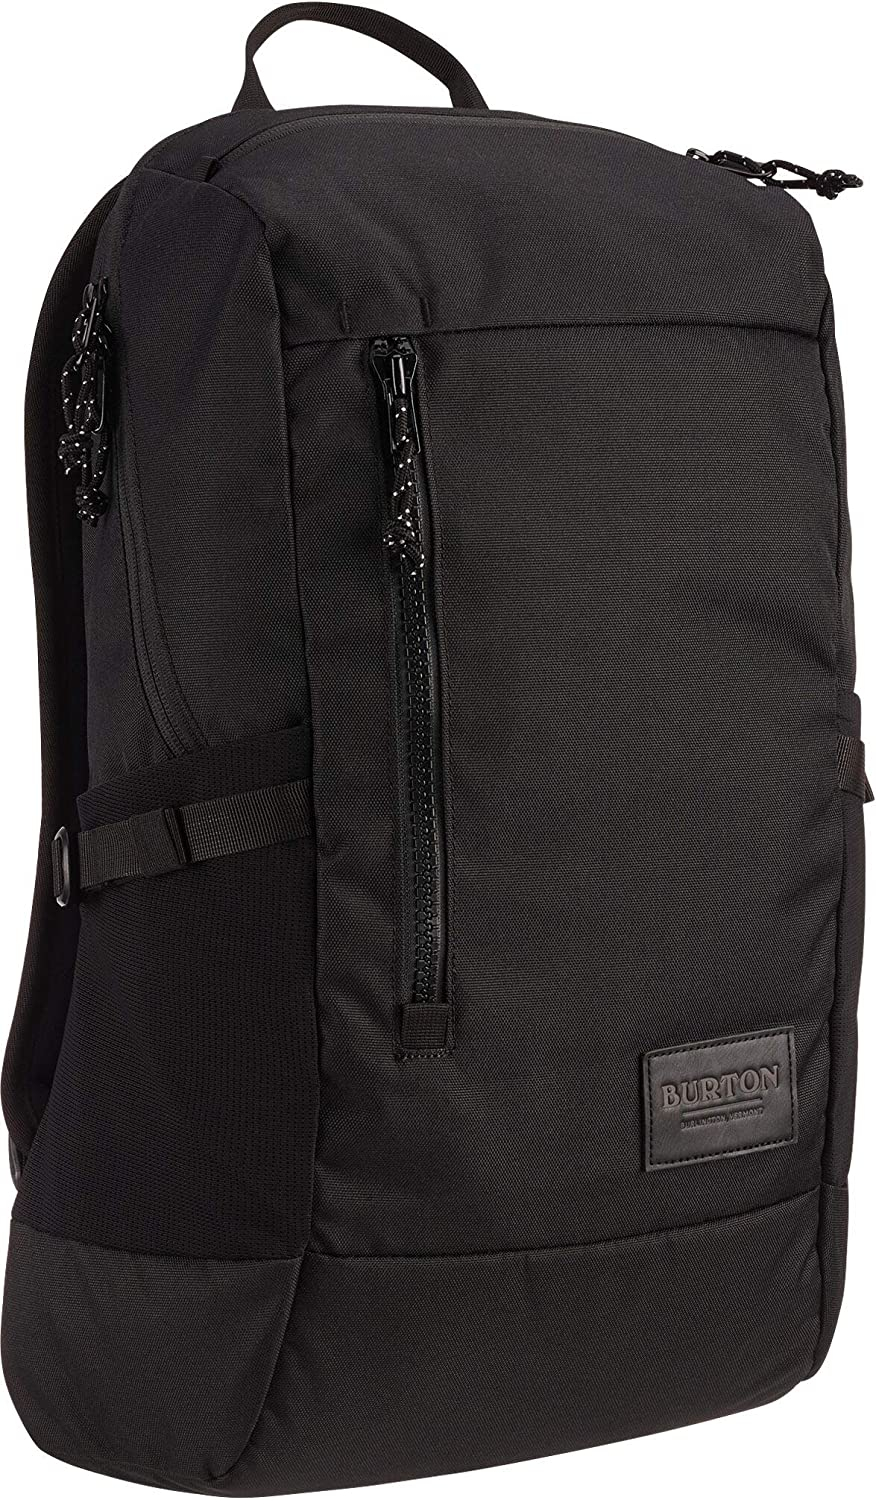 Burton New Prospect 2.0 Backpack with Water Bottle Pockets Padded Laptop Sleeve